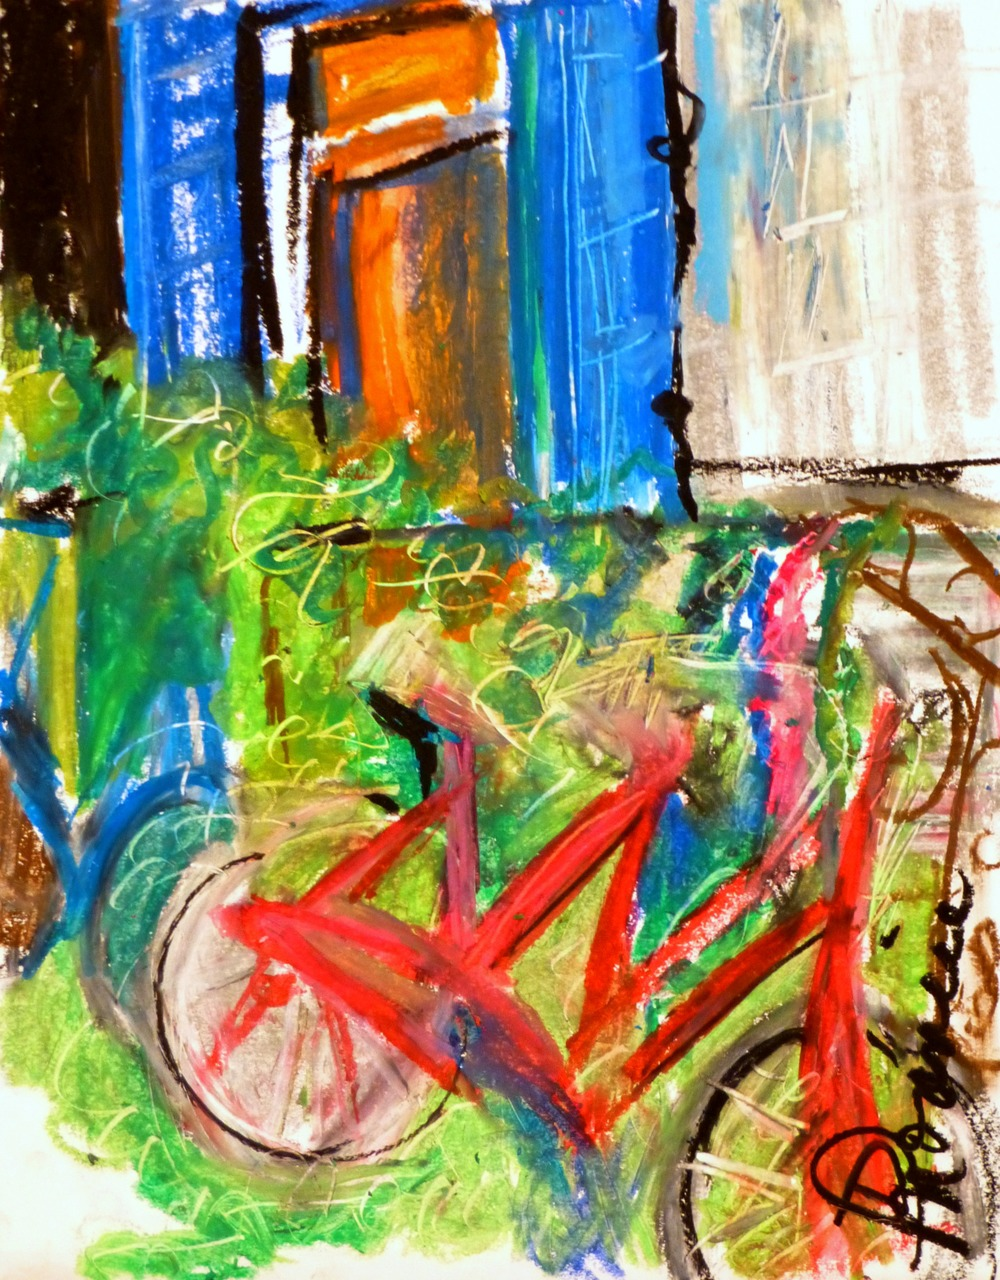 nwm Sketch - Bywater Bicycle.jpg